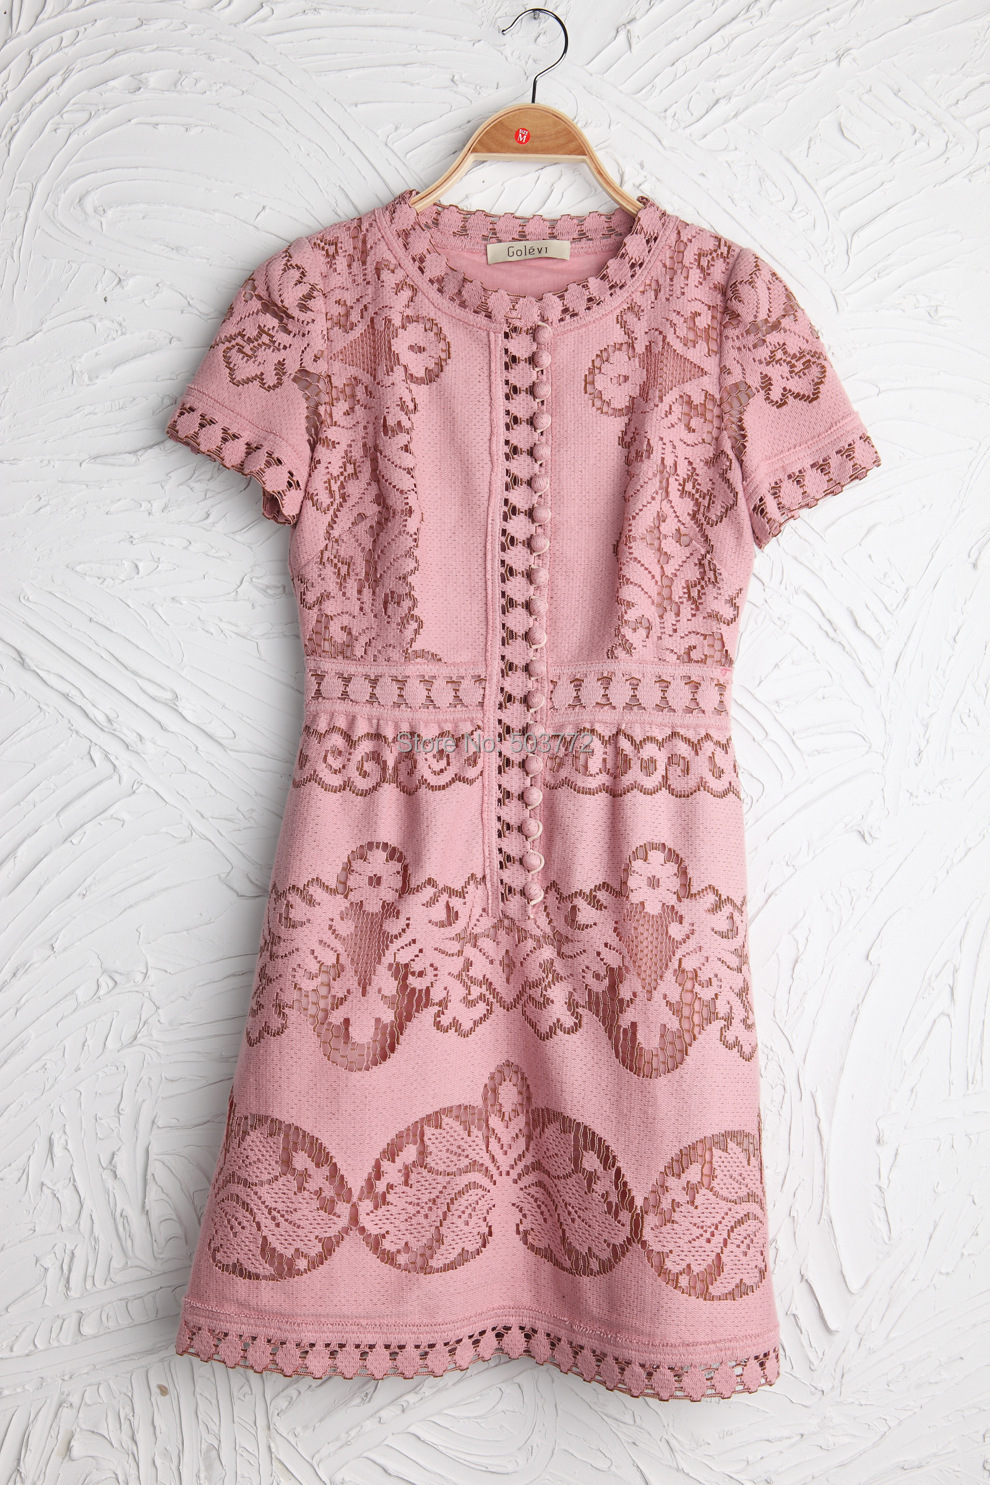 Top Quality Inspired Designer Cutout Embroidery Dresses Silk Cotton